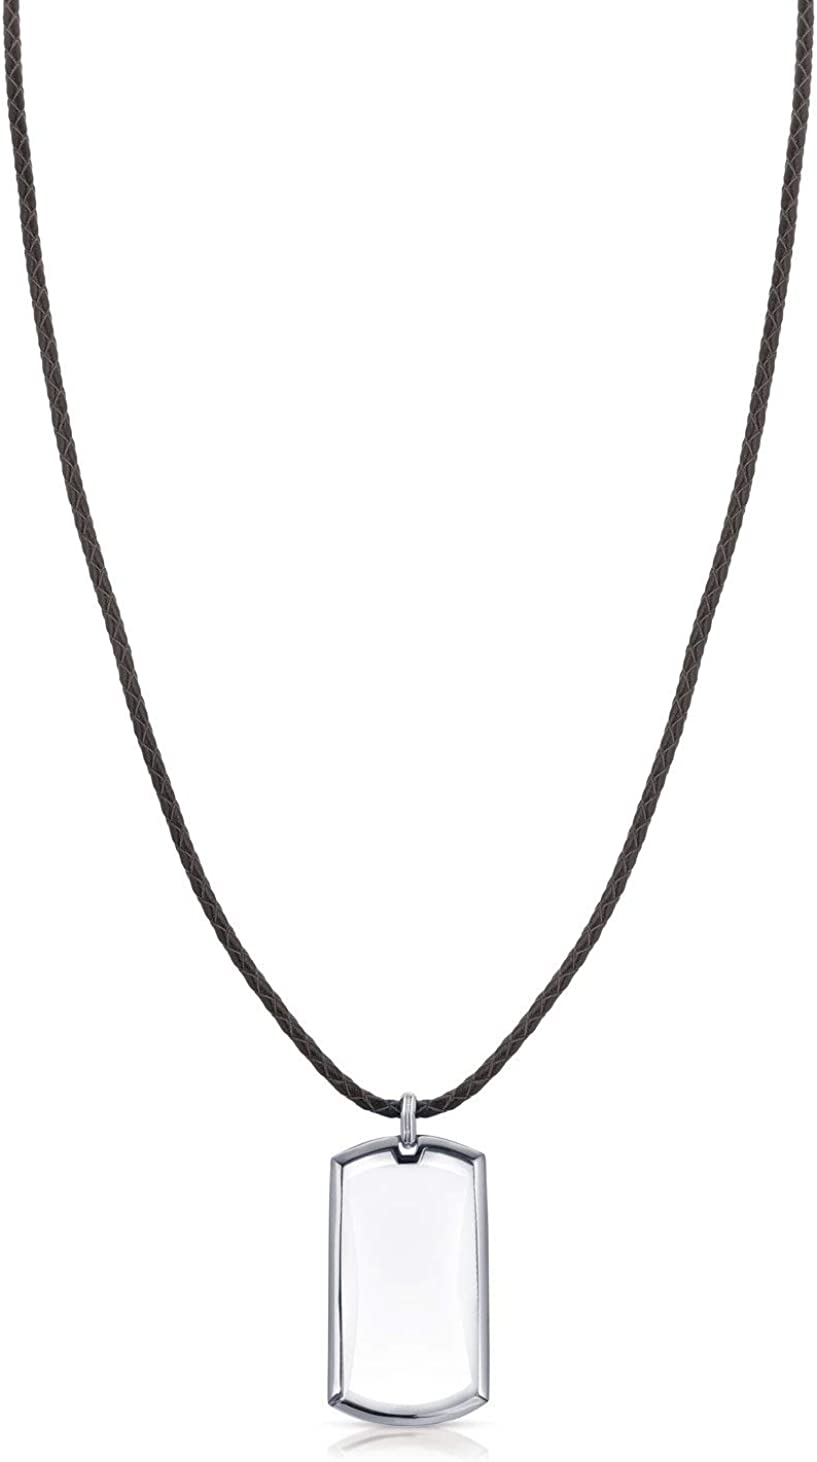 Moderne Monocle - Magnifier Pendant Many popular brands Leather chain Necklace. with All items in the store